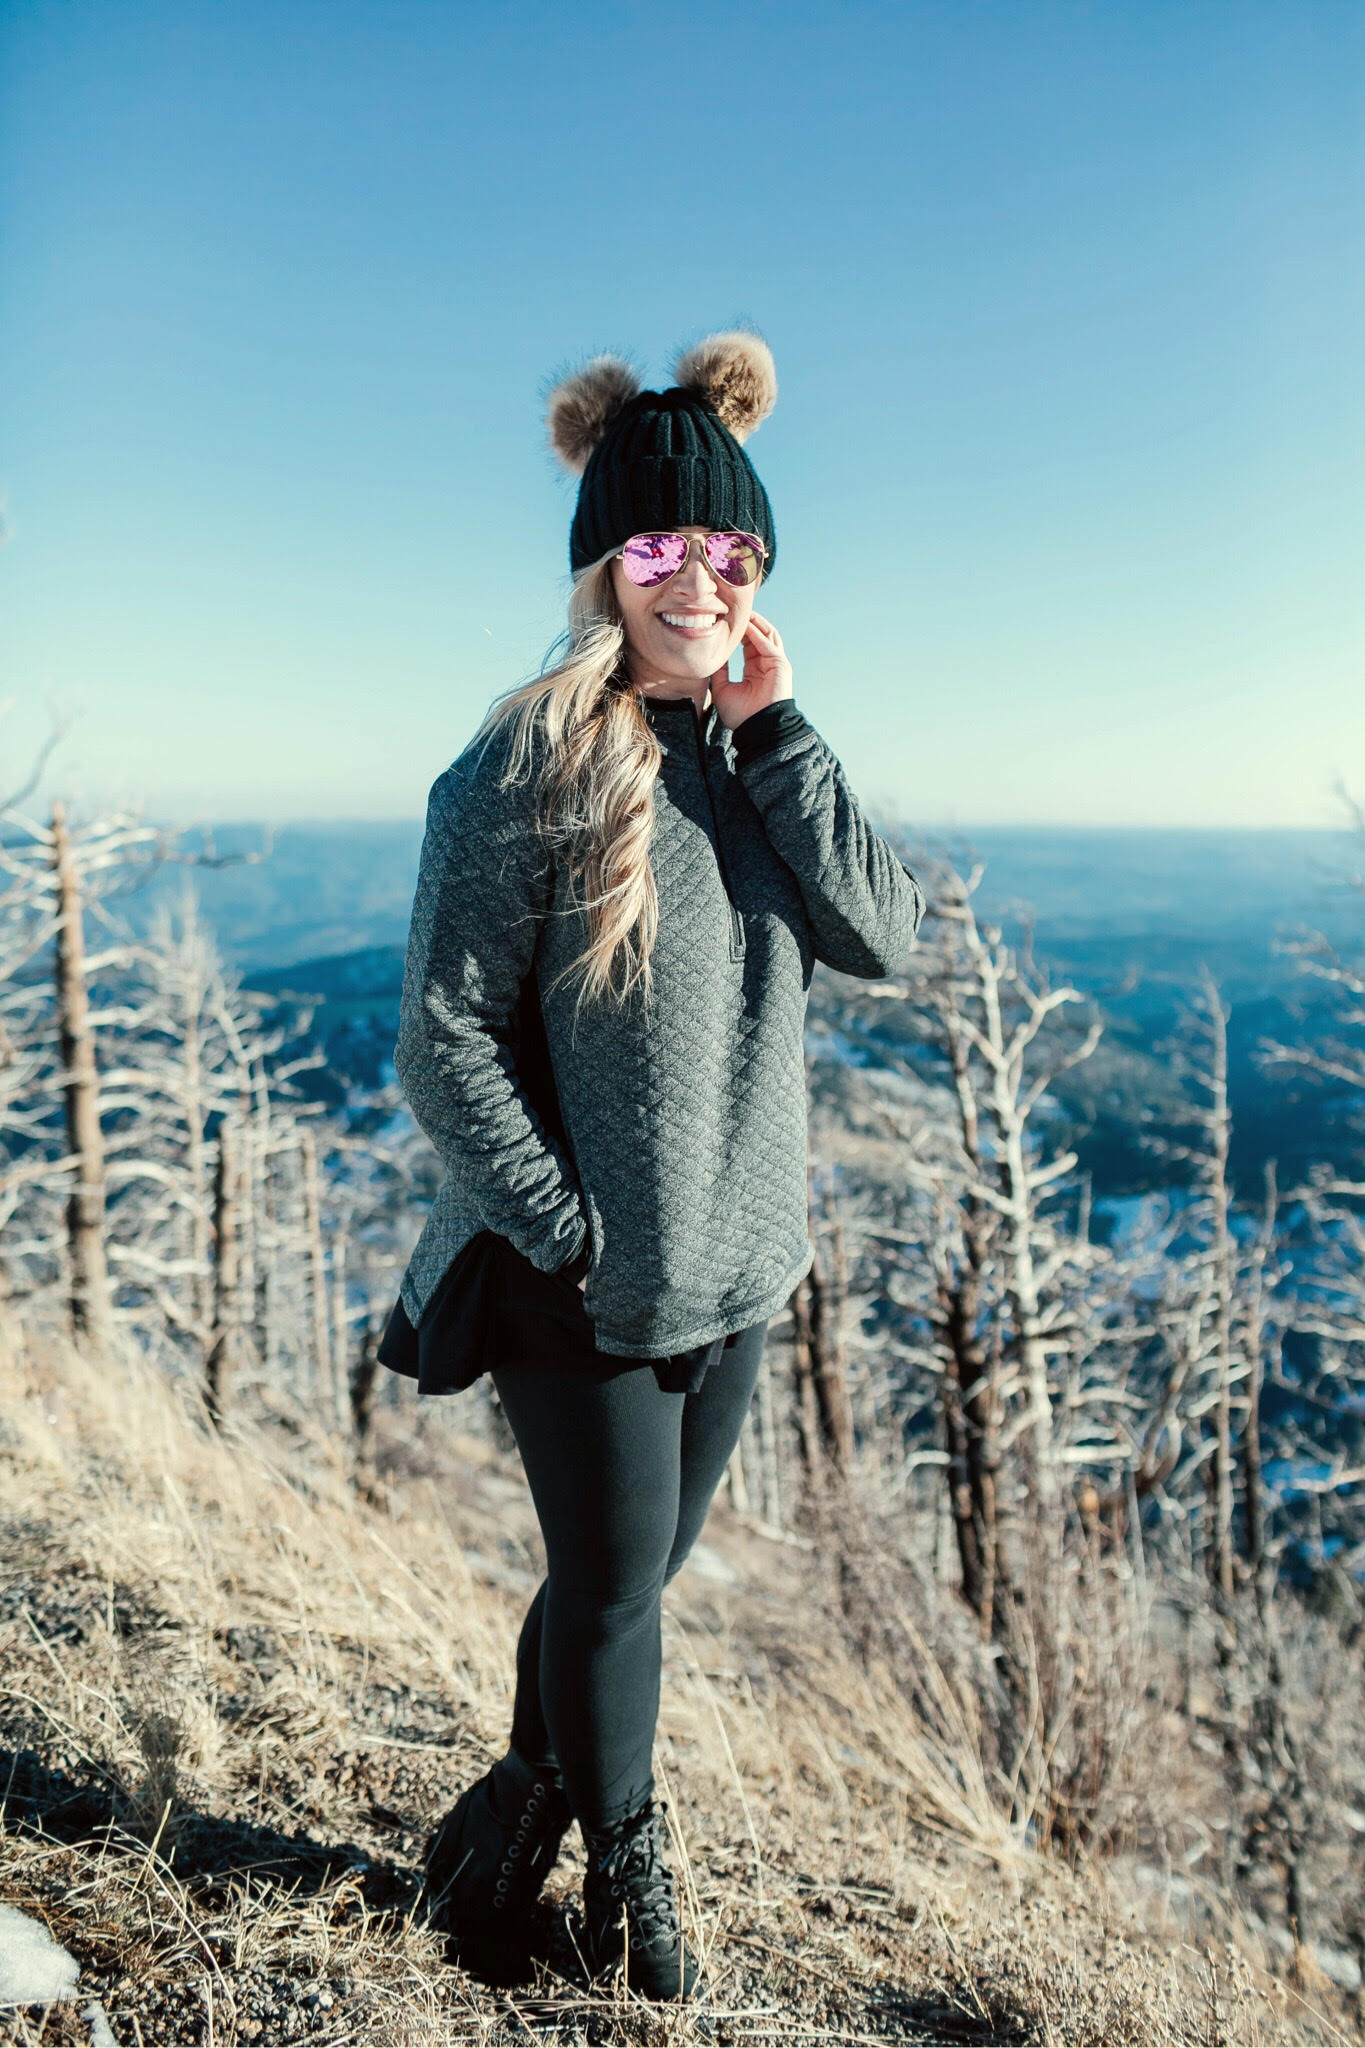 The Best Things to Do in Ruidoso, NM in Winter